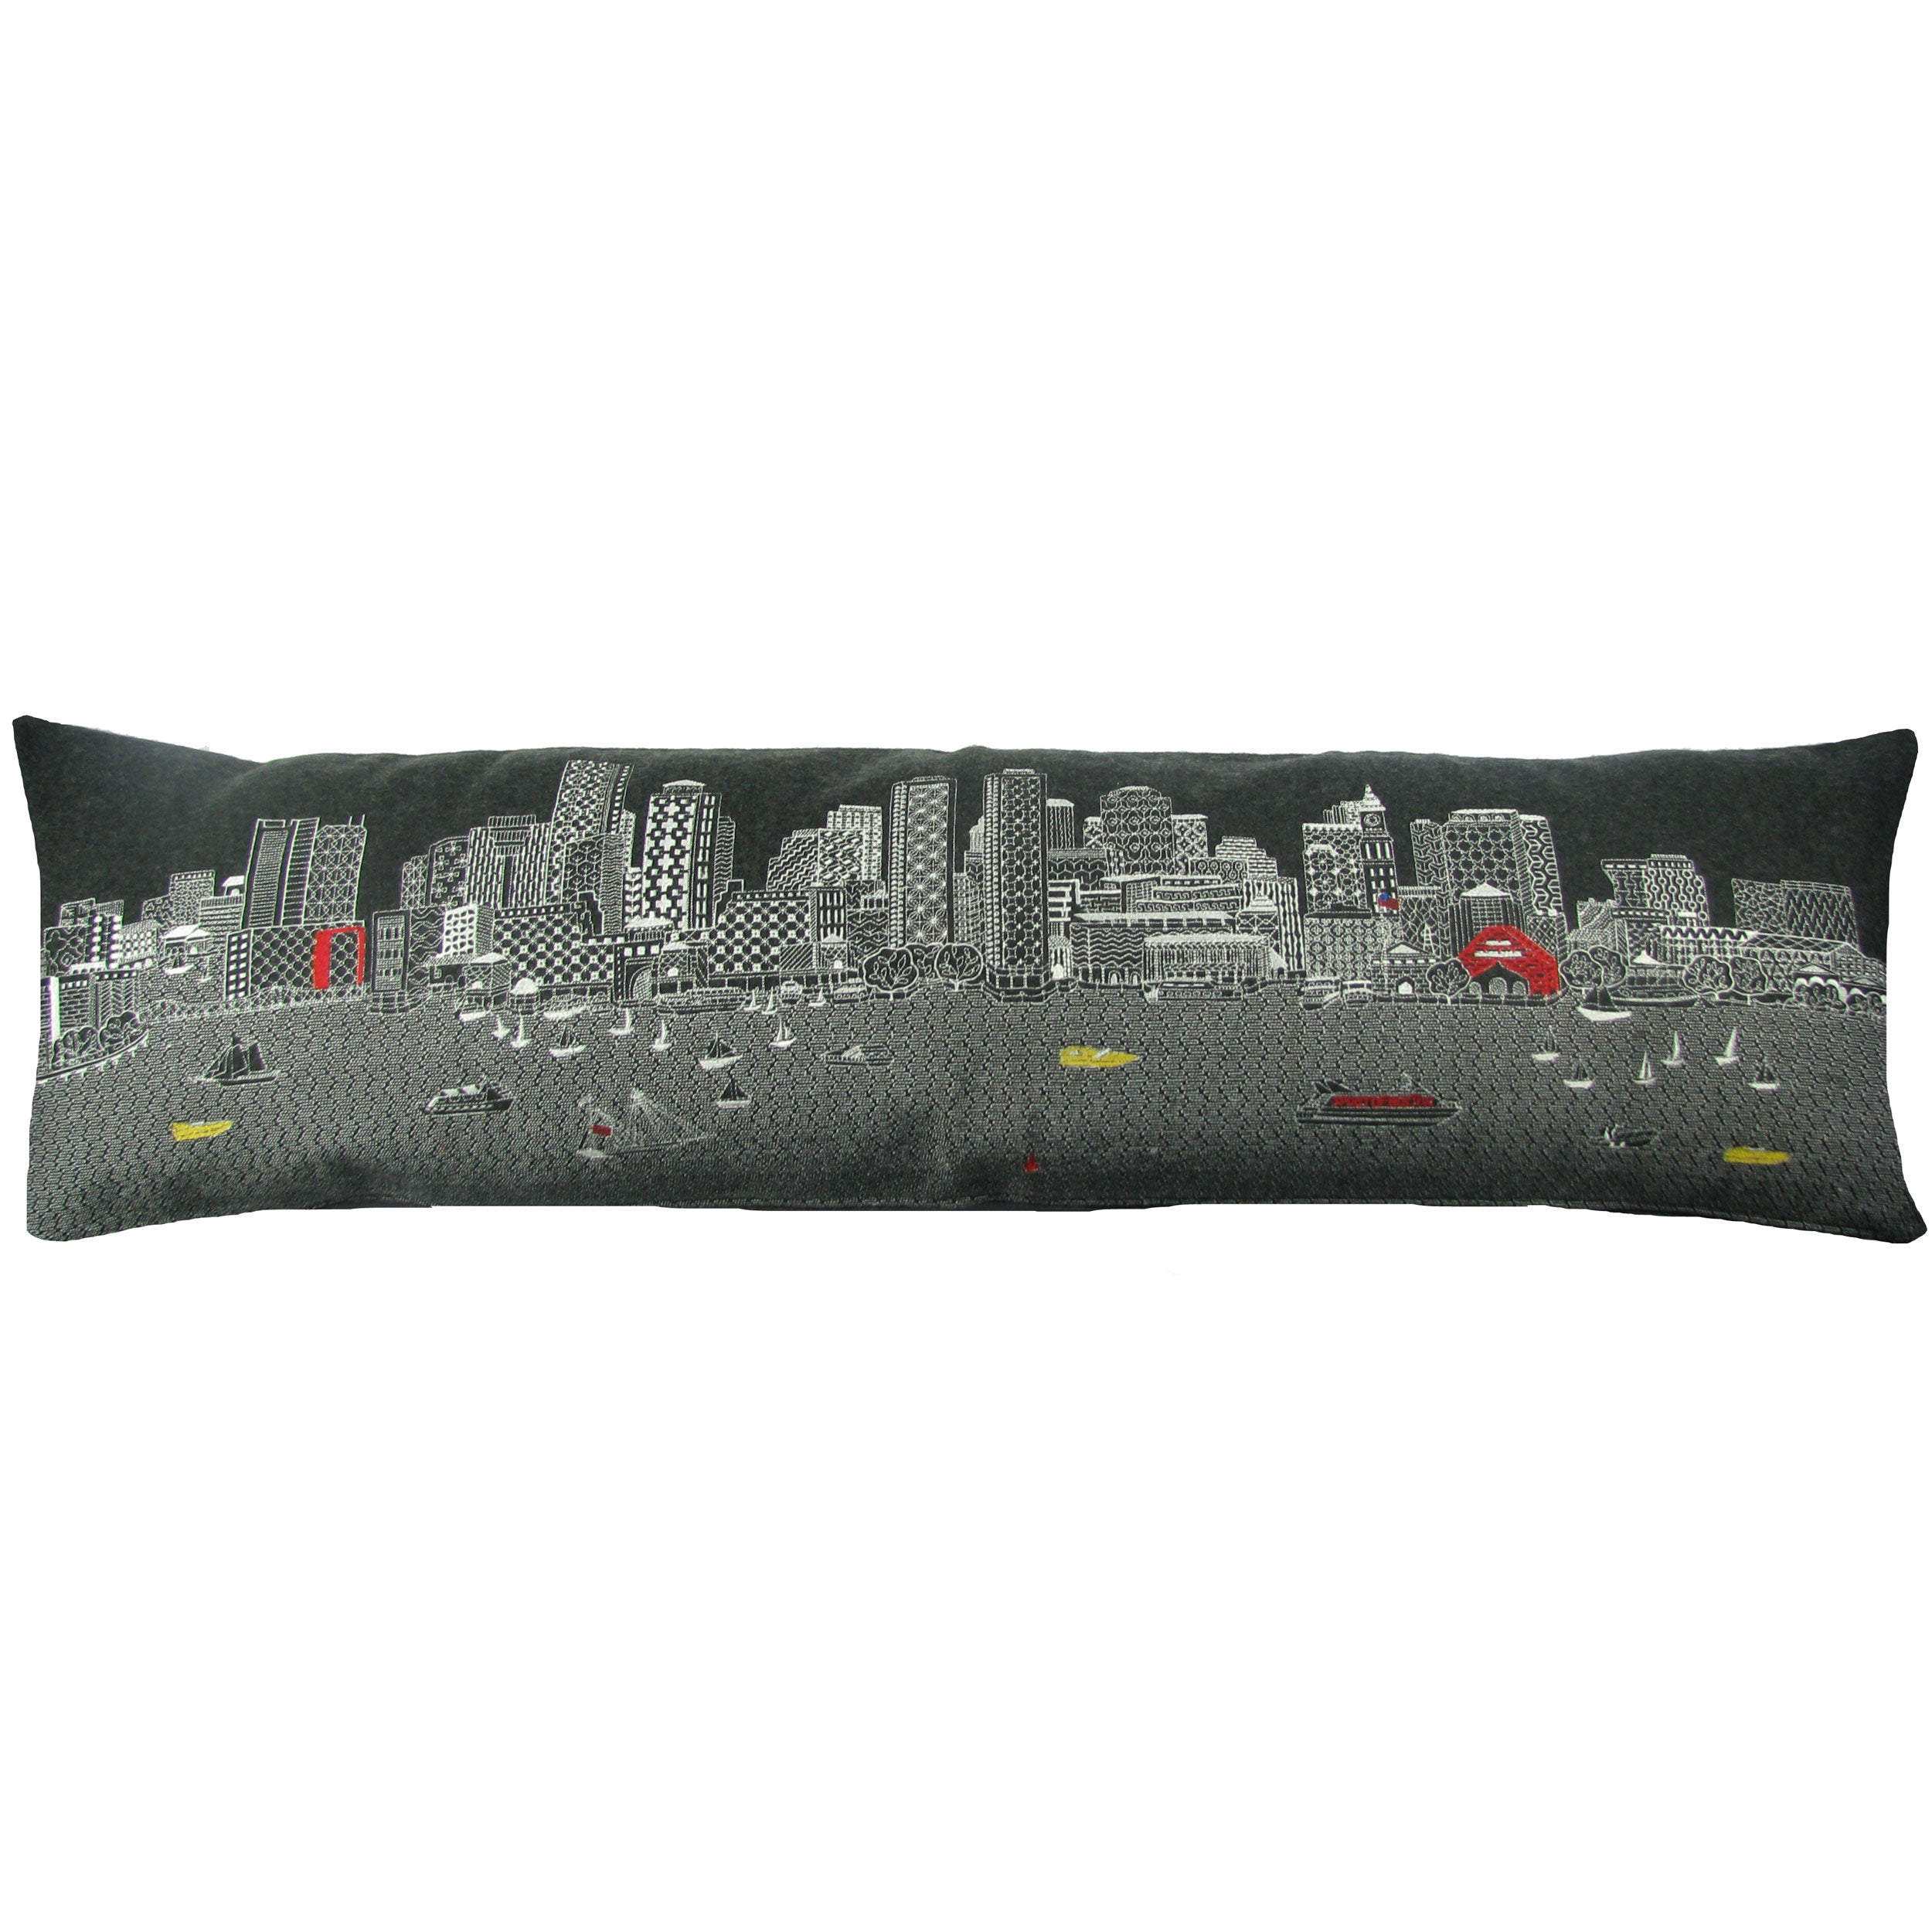 Boston Skyline Pillow